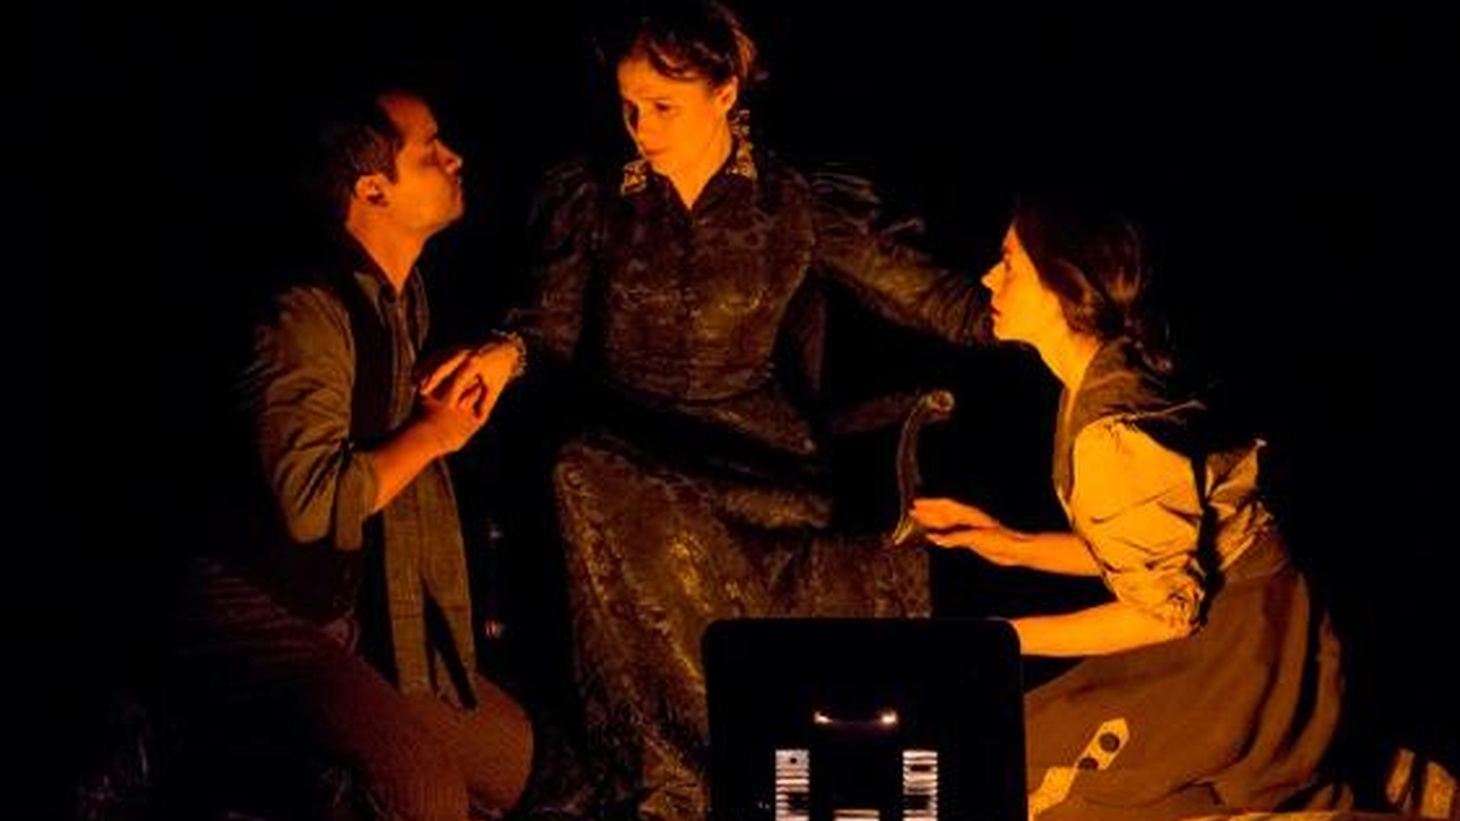 The genius of Neva, written and directed by Chilean Guillermo Calderón, is it captures not only Chekhov's gift for theater but also what's happening outside the theater.